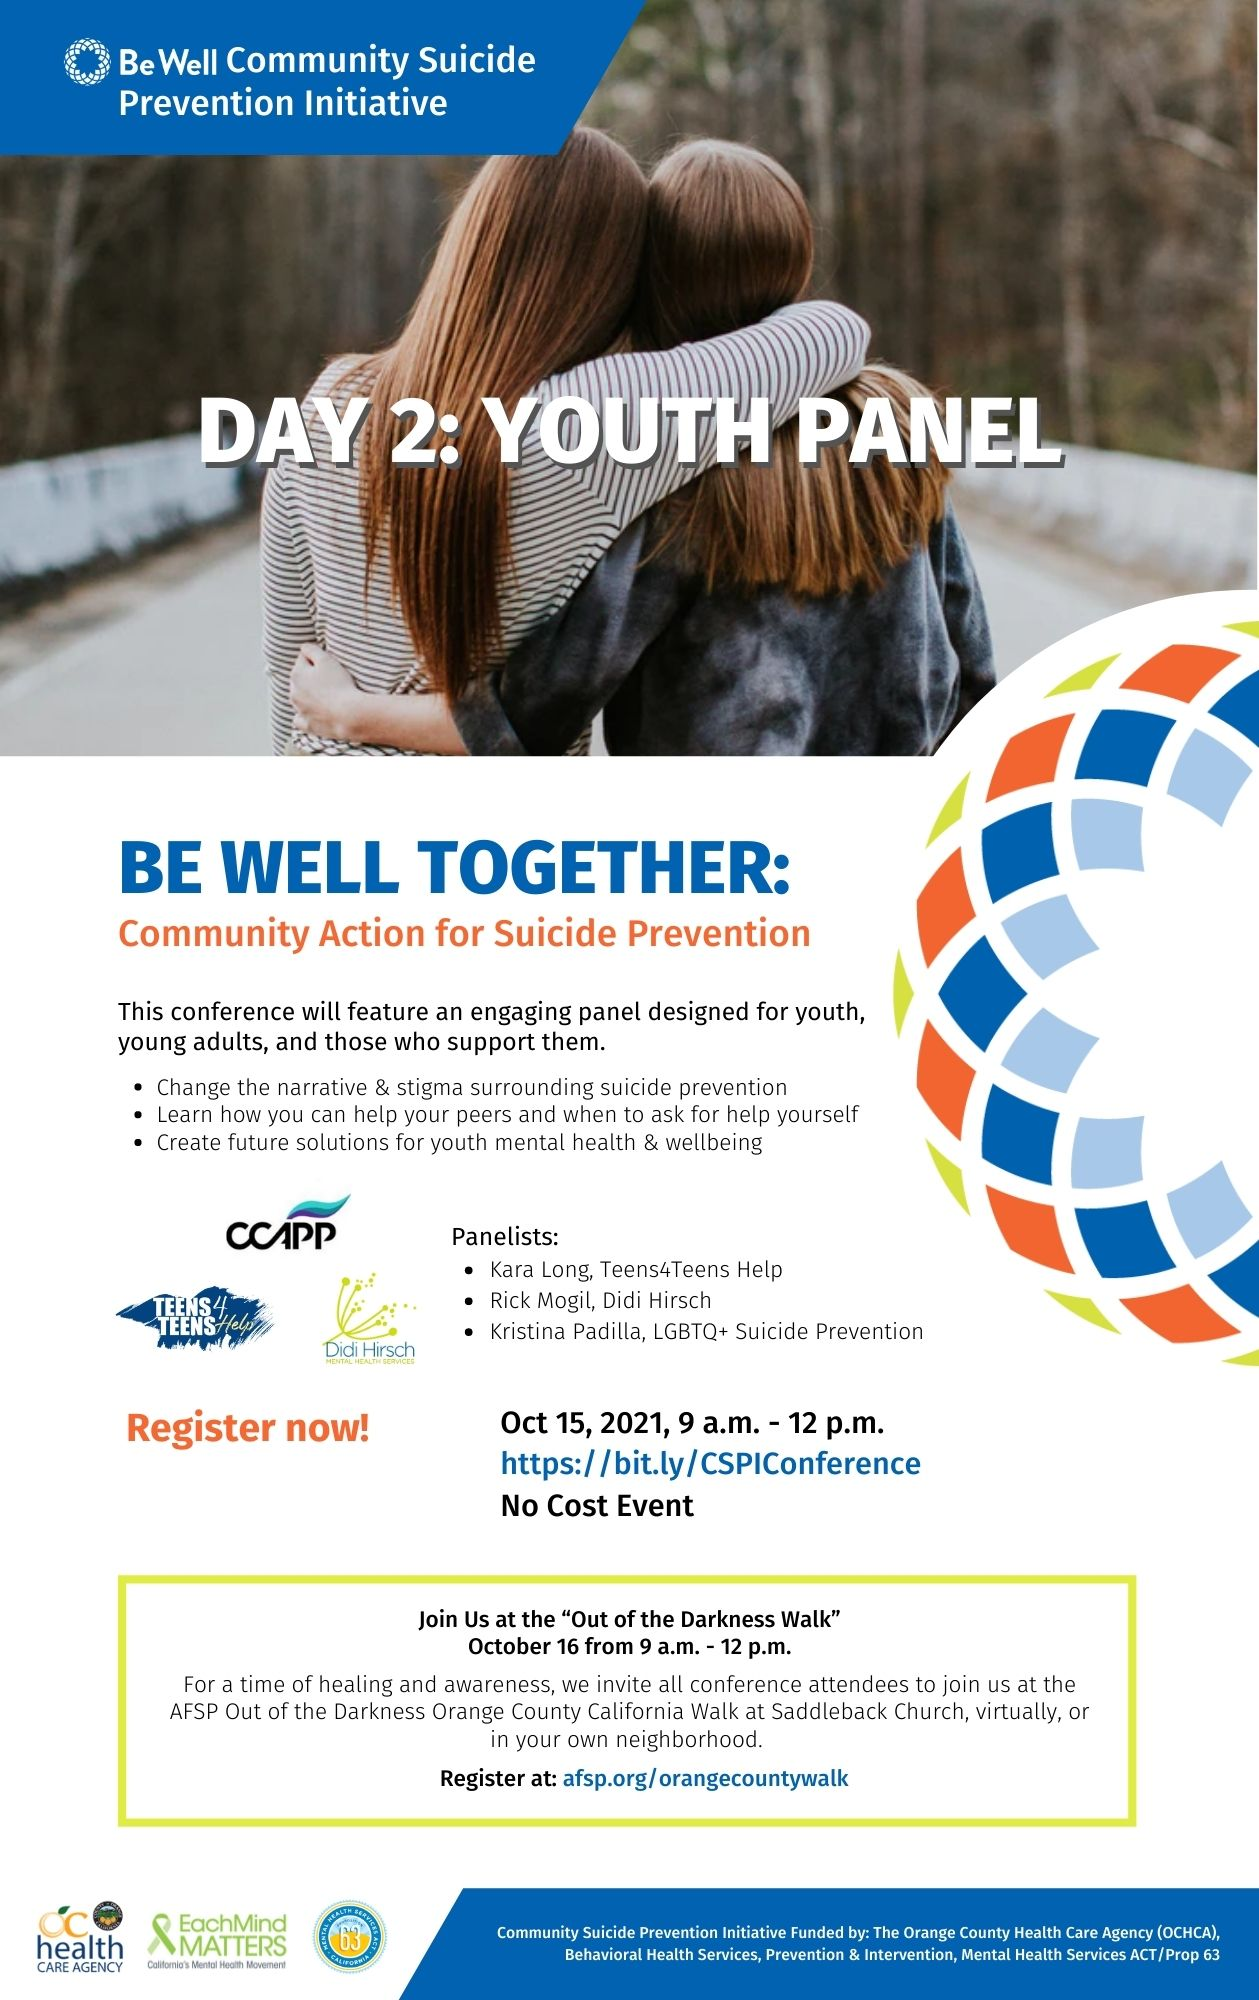 Be Well Together: Community Action for Suicide Prevention Youth Panel